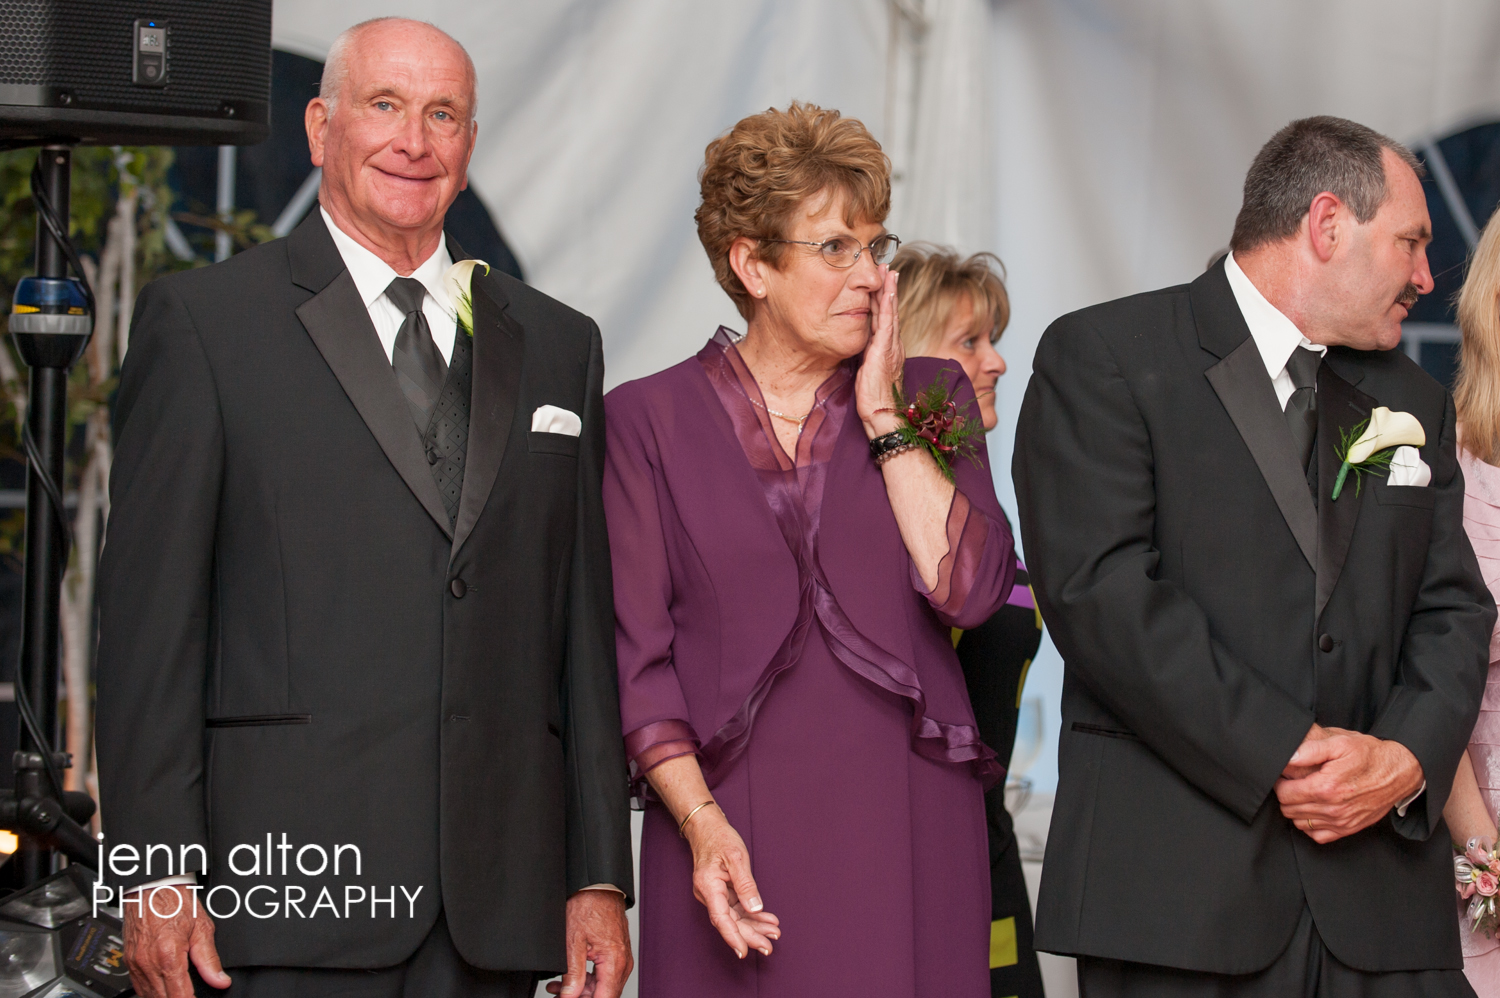 Family emotion during reception